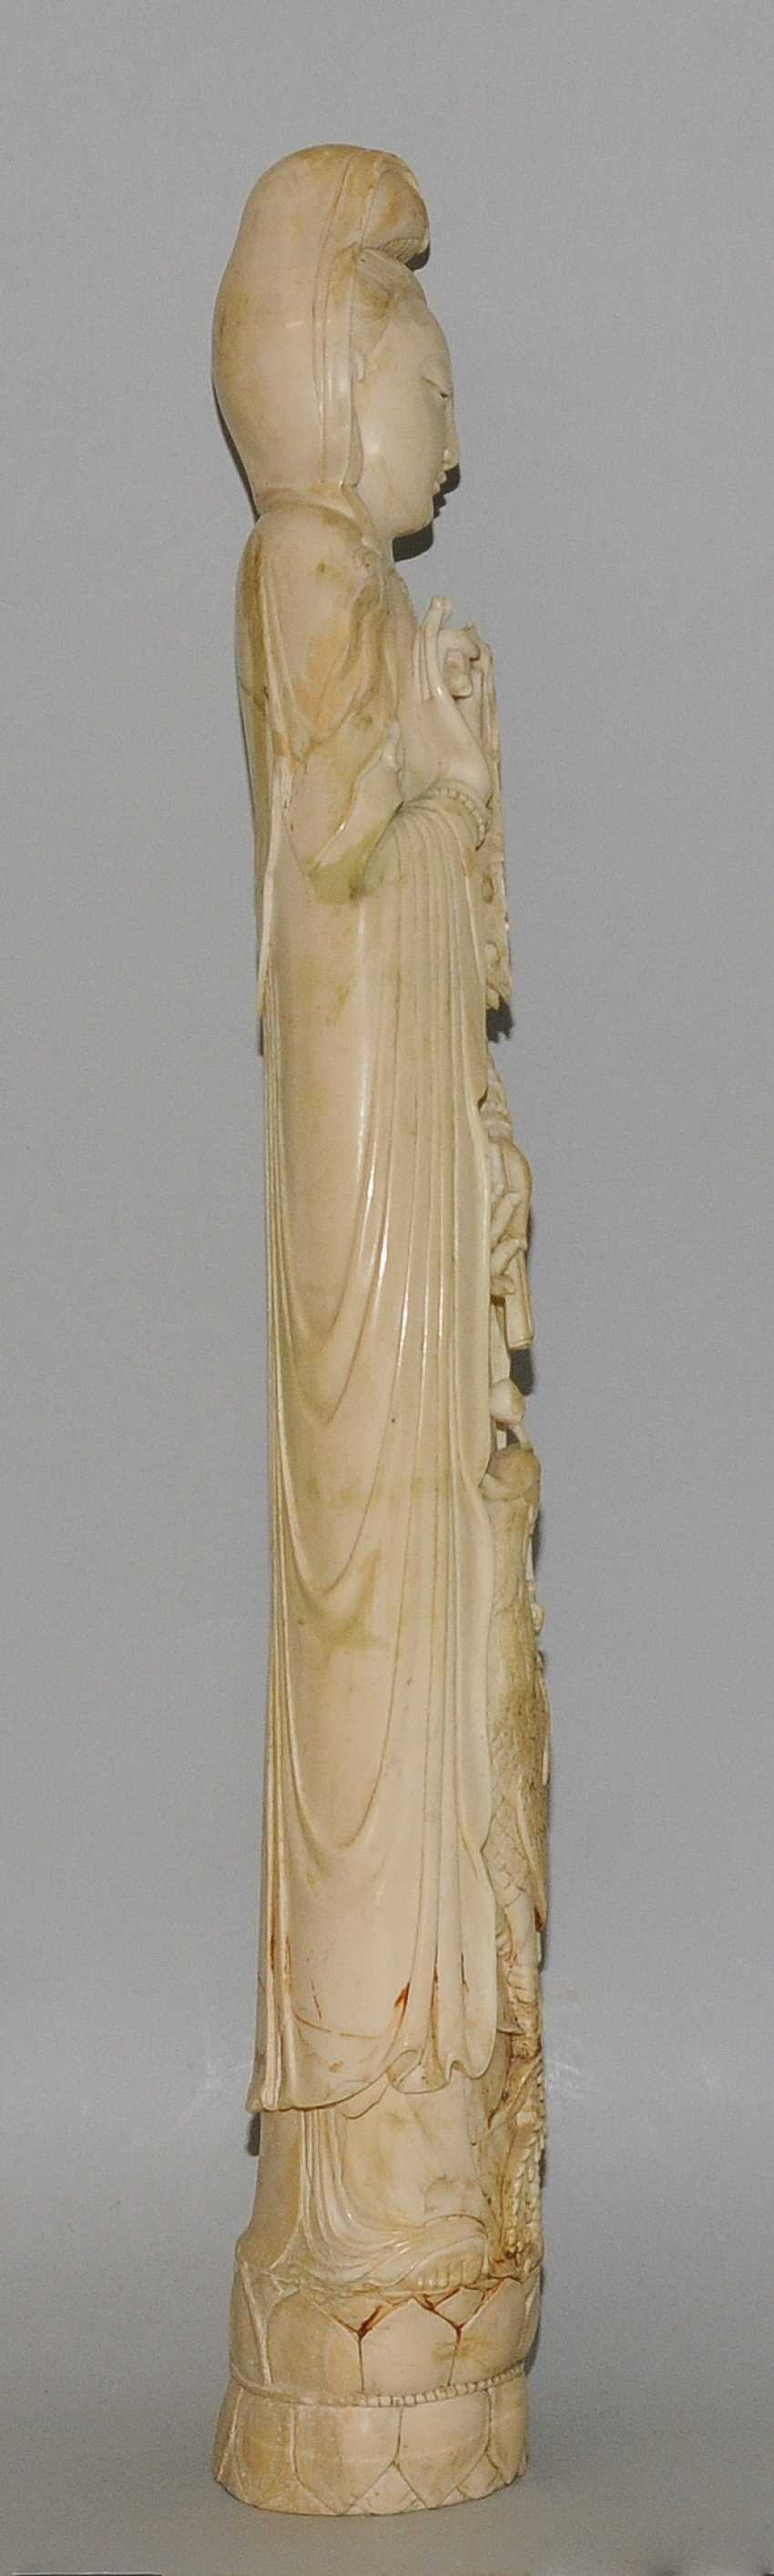 A Large Ivory Figure - photo 8